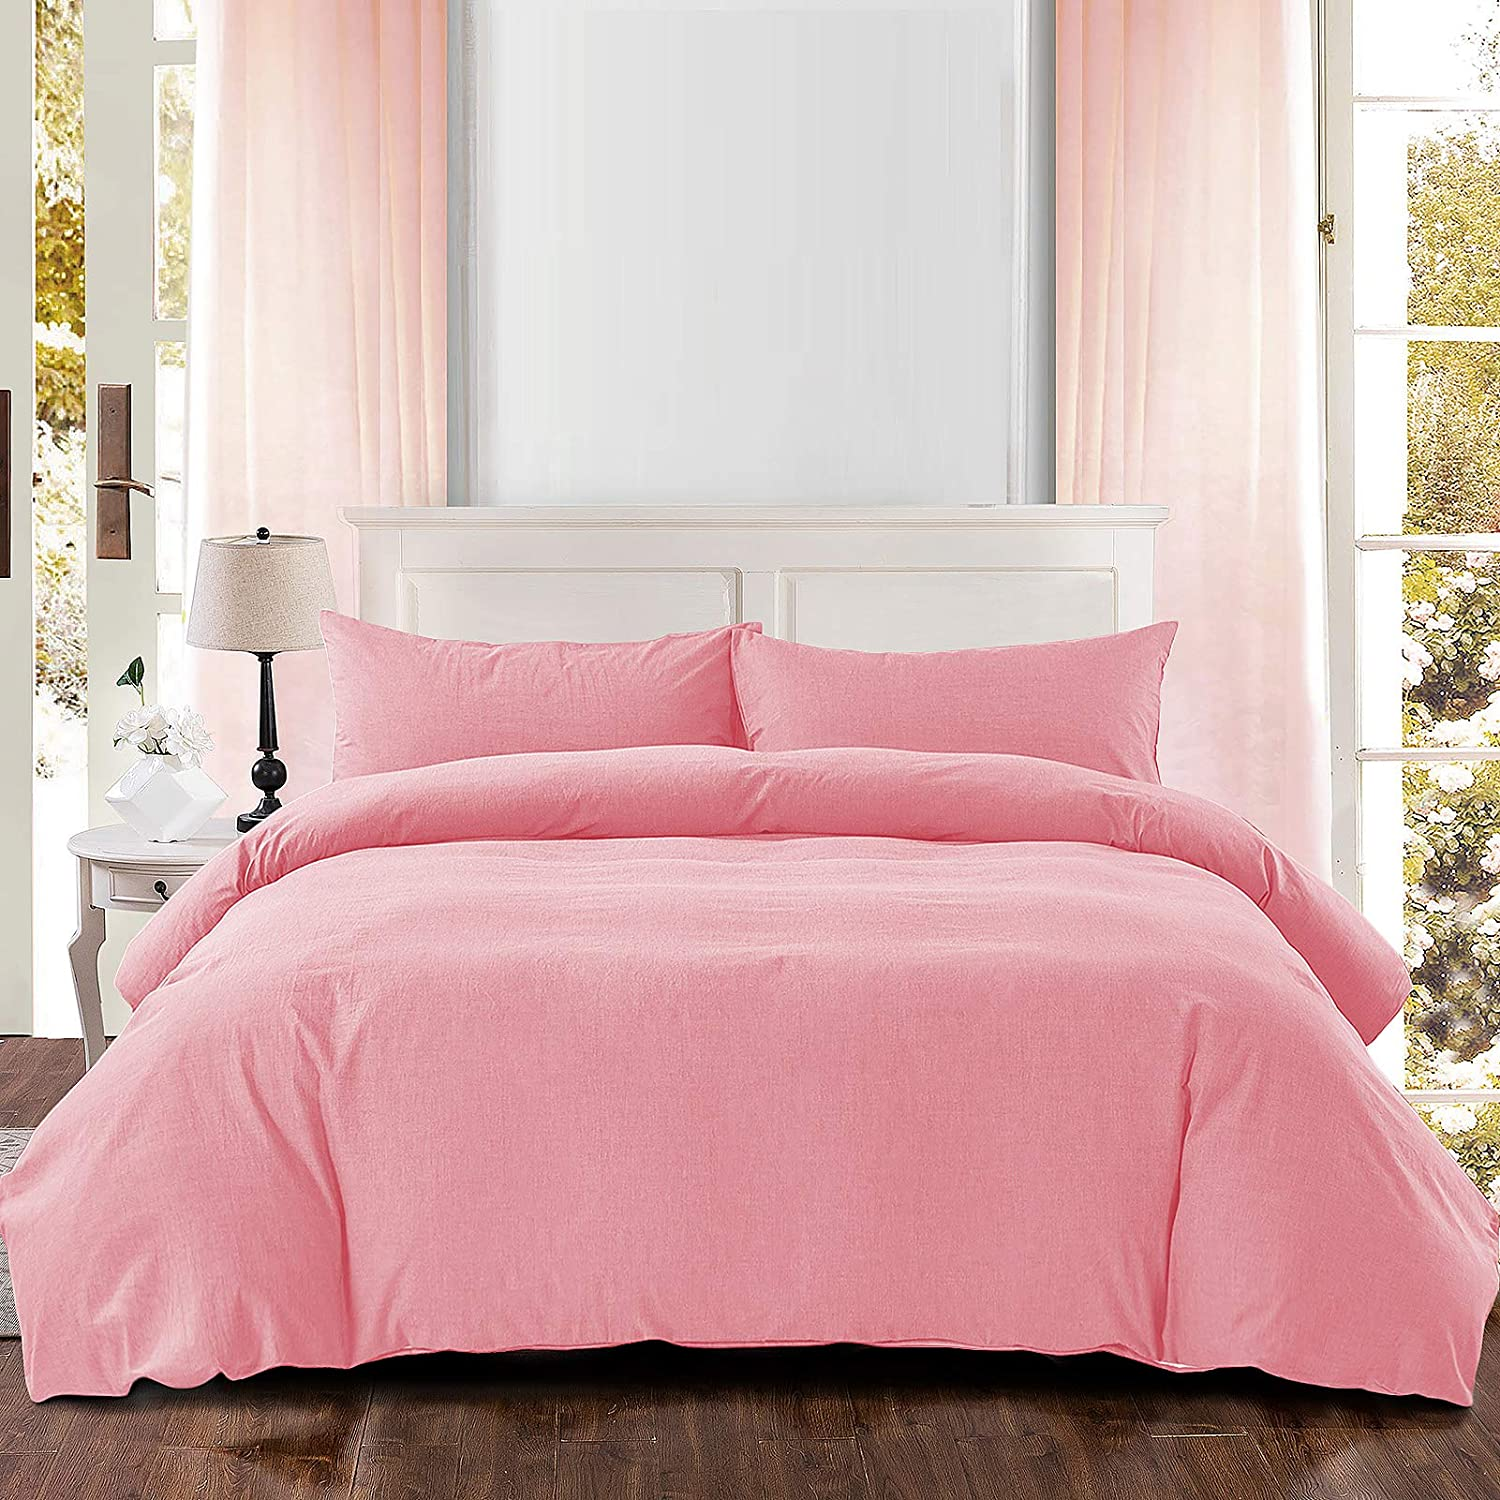 NEWLAKE Duvet Cover NEW before selling Queen Washed Solid Save money Sets Cotton Duvets